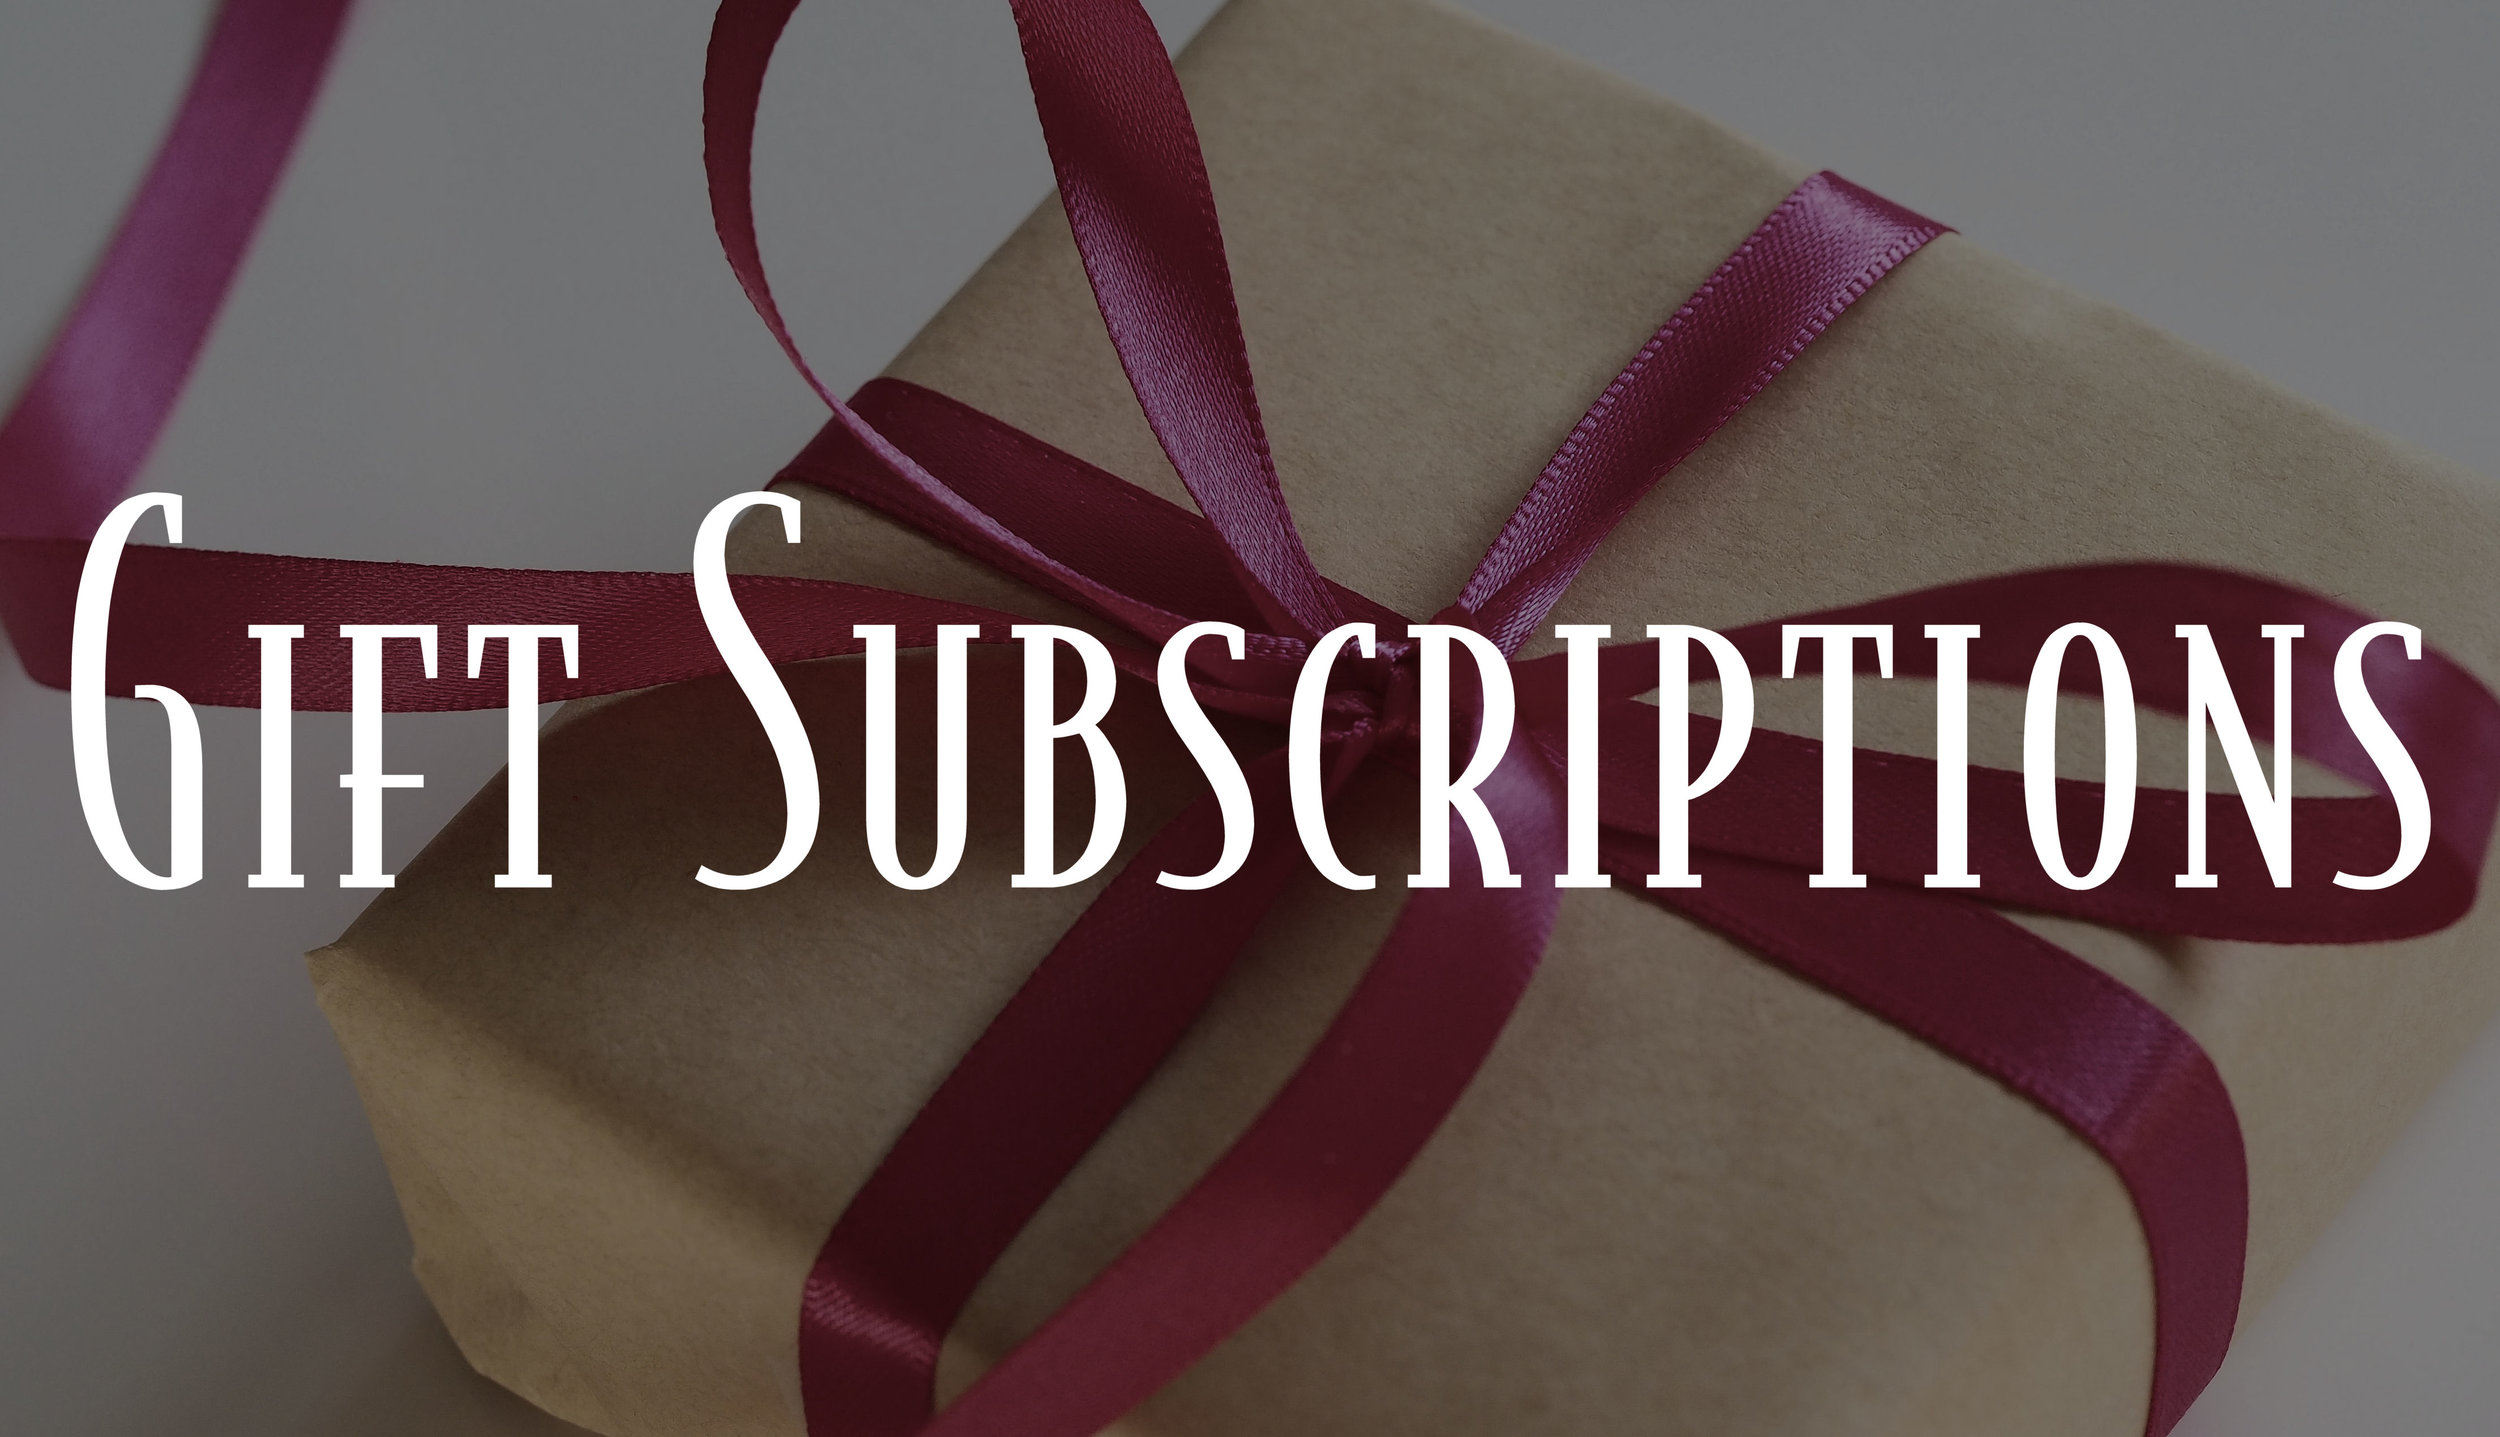 - Purchase a gift subscription for friends and family!